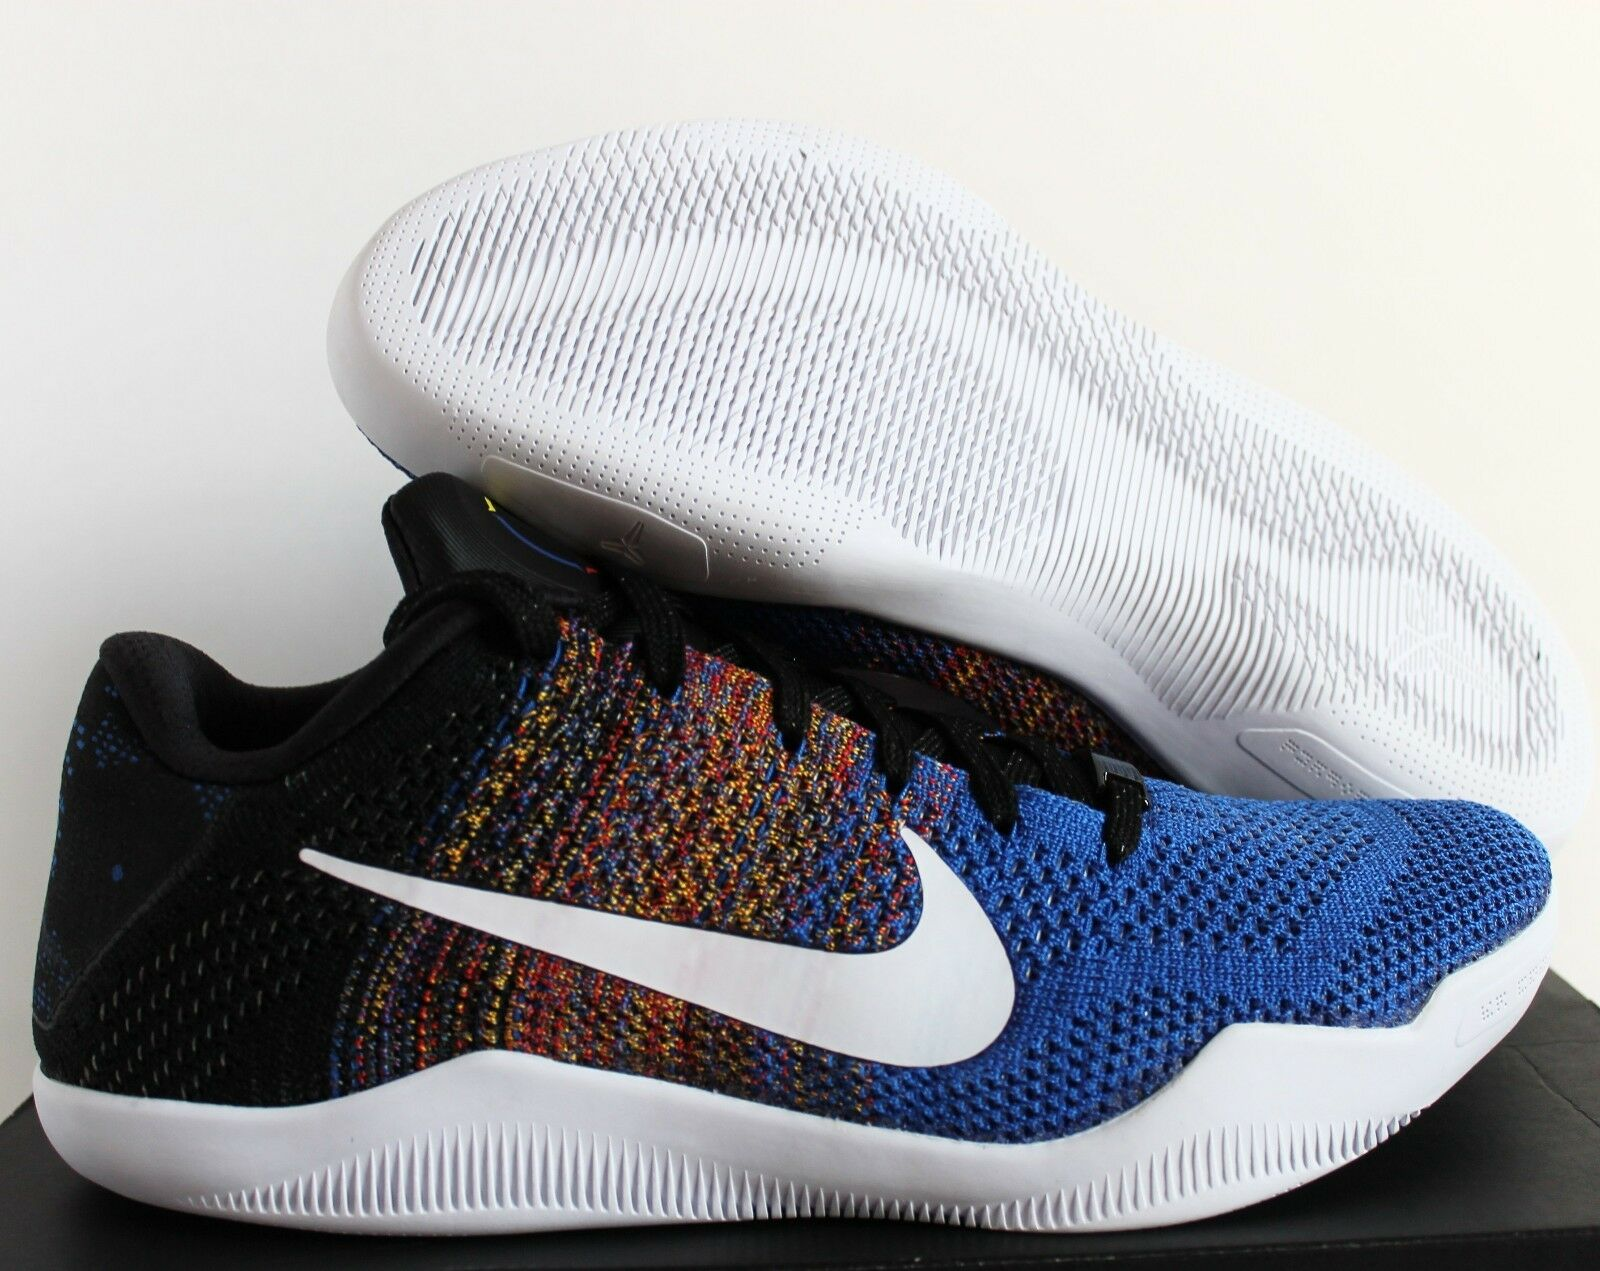 Nike Kobe XI 11 Elite Low BHM Black History Month sz 10 [822522-914]